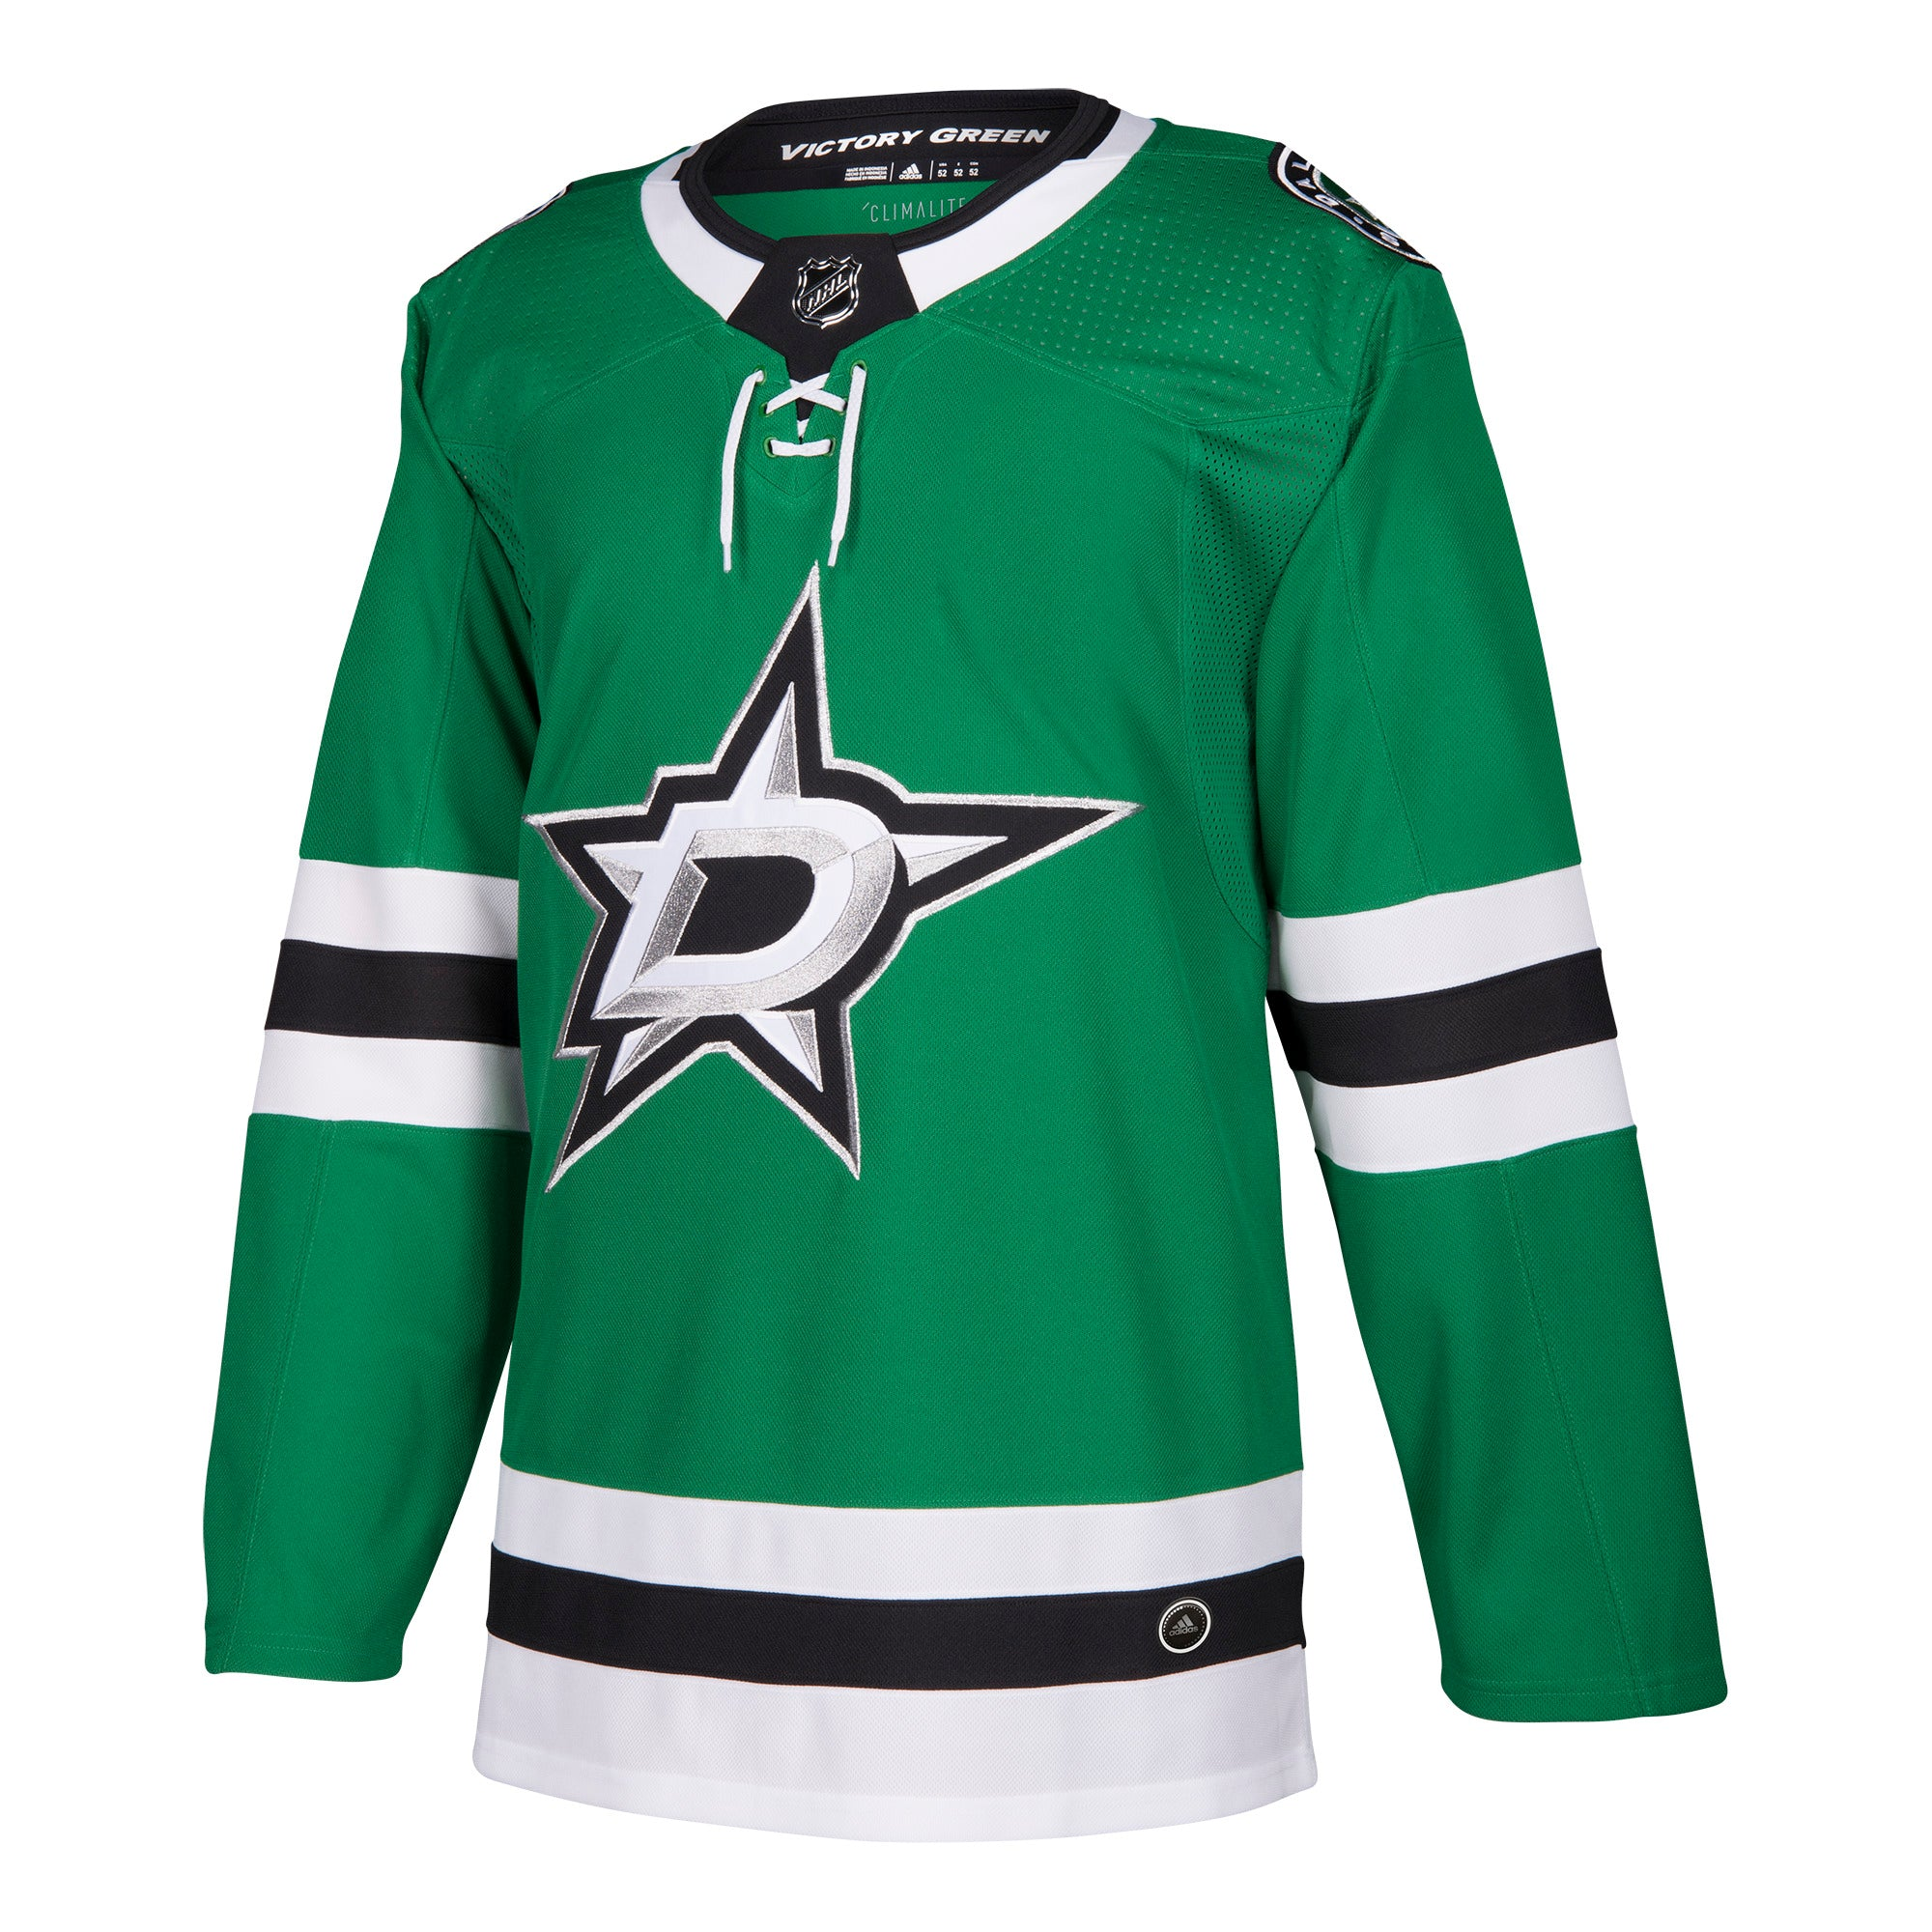 96d68d4e Dallas Stars HOME GREEN 252J Adidas NHL Authentic Pro Jersey ...